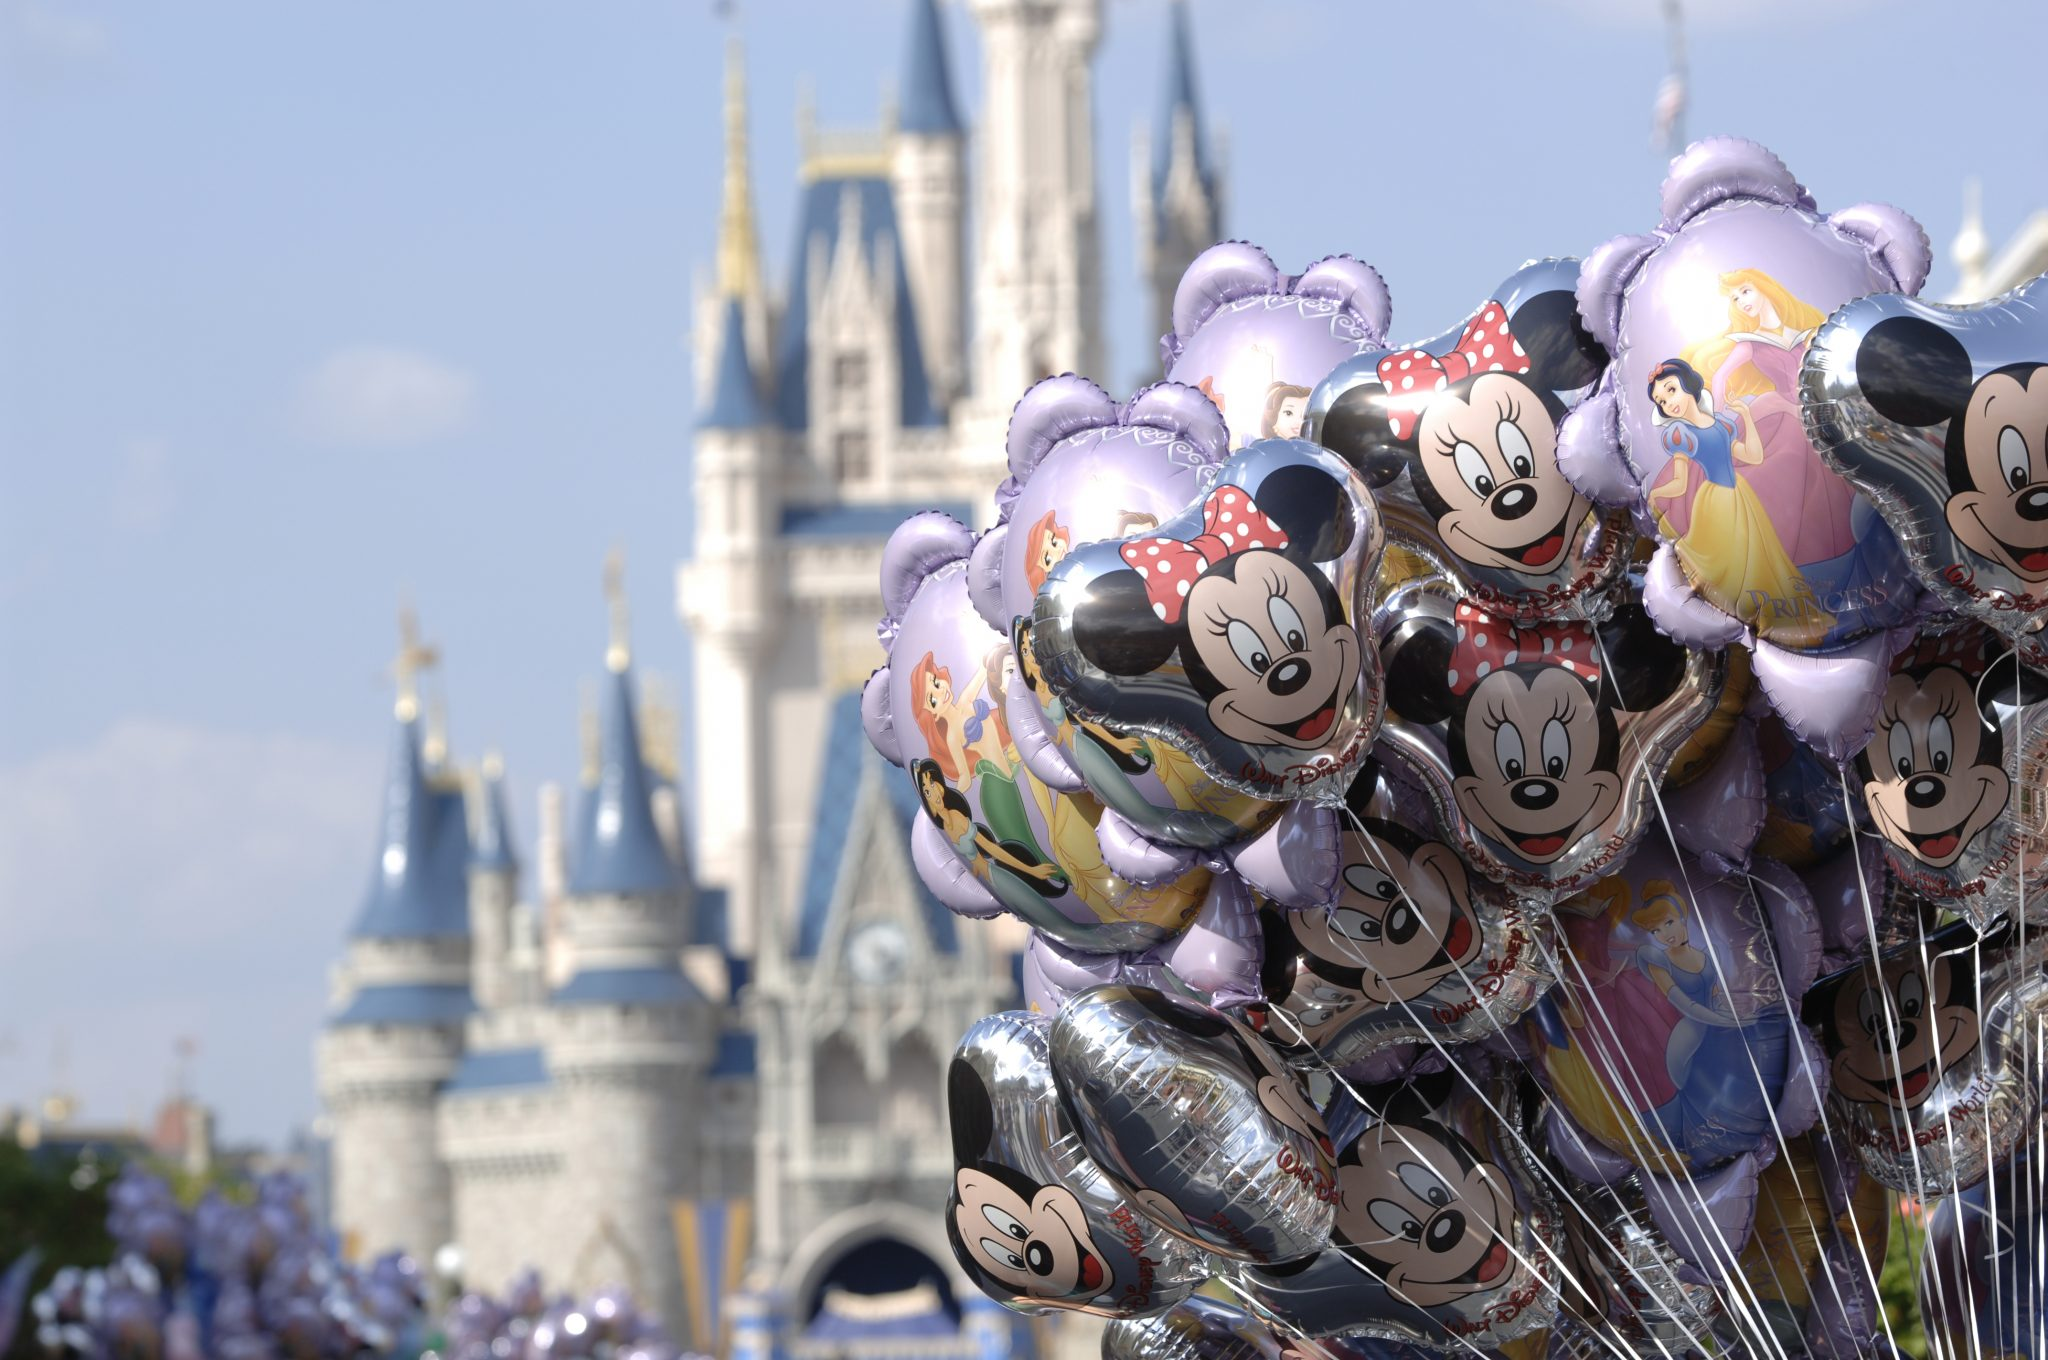 main-stree-usa-minnie-mouse-balloons-disney-travel-picture